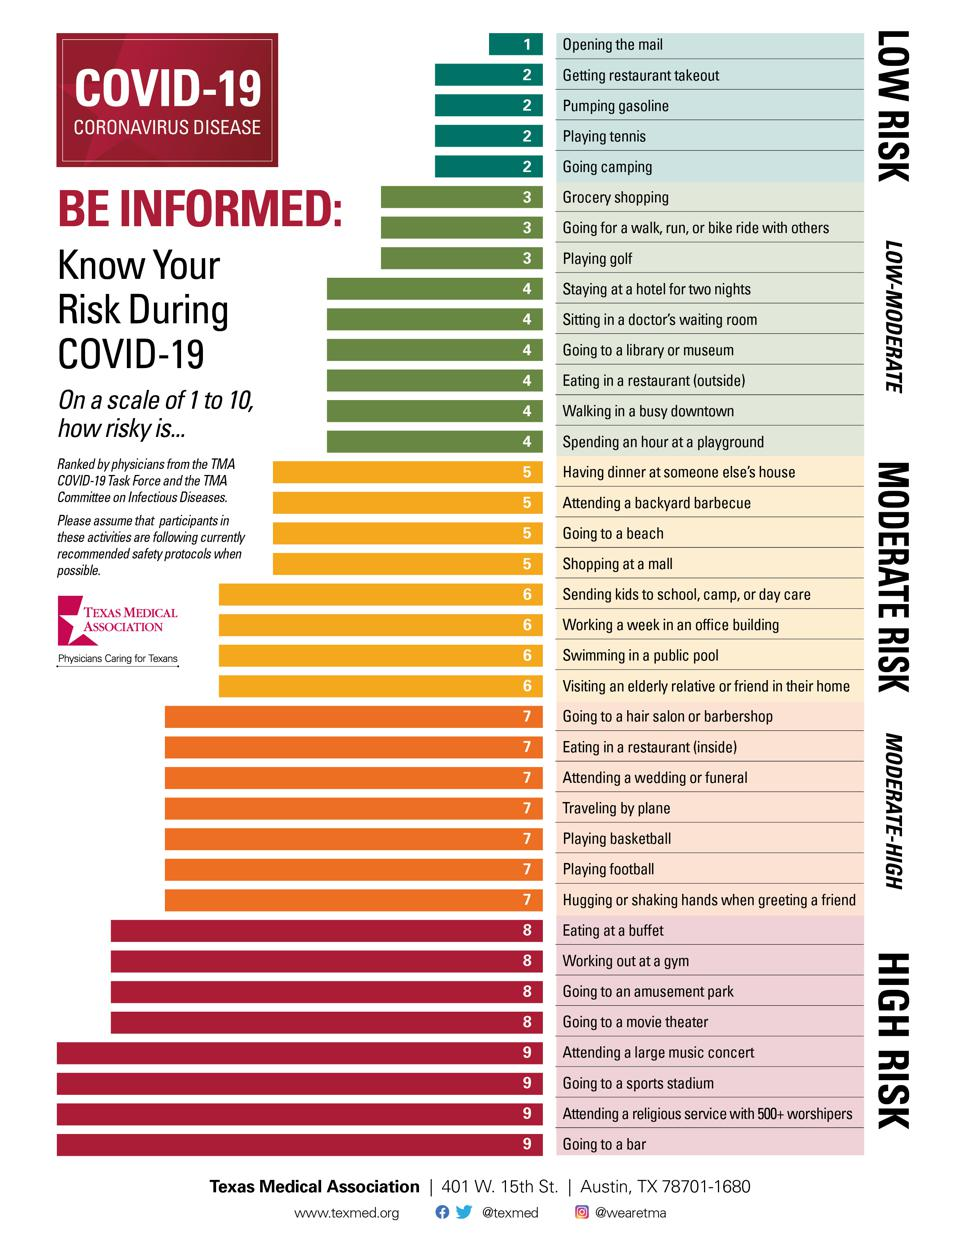 Bar chart of everyday activities, ranked by risk for Covid-19 transmission.